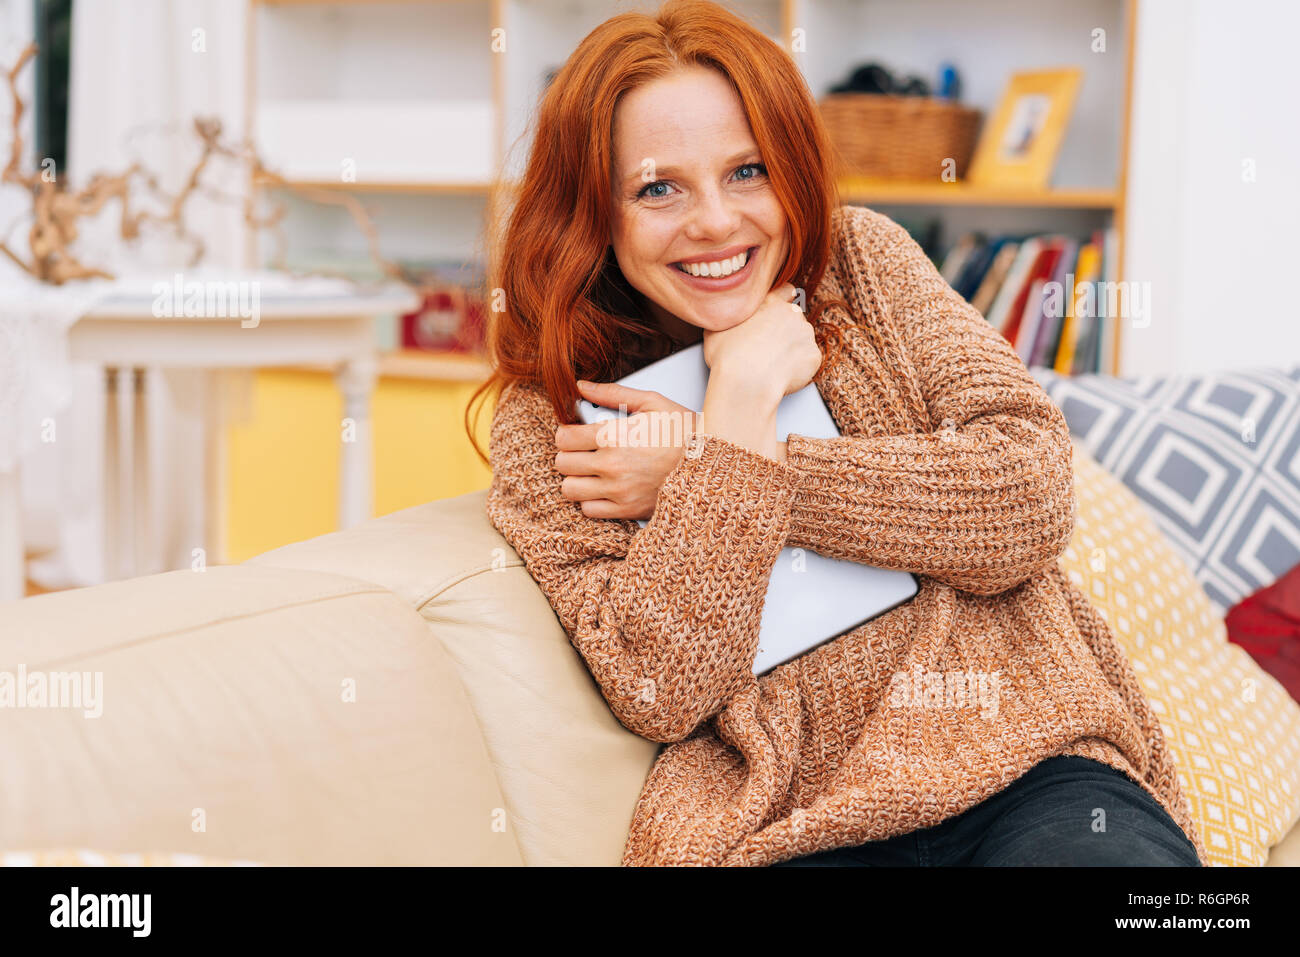 Vivacious friendly young woman clutching a tablet-pc to her chest as she grins at the camera while relaxing on an indoor sofa - Stock Image